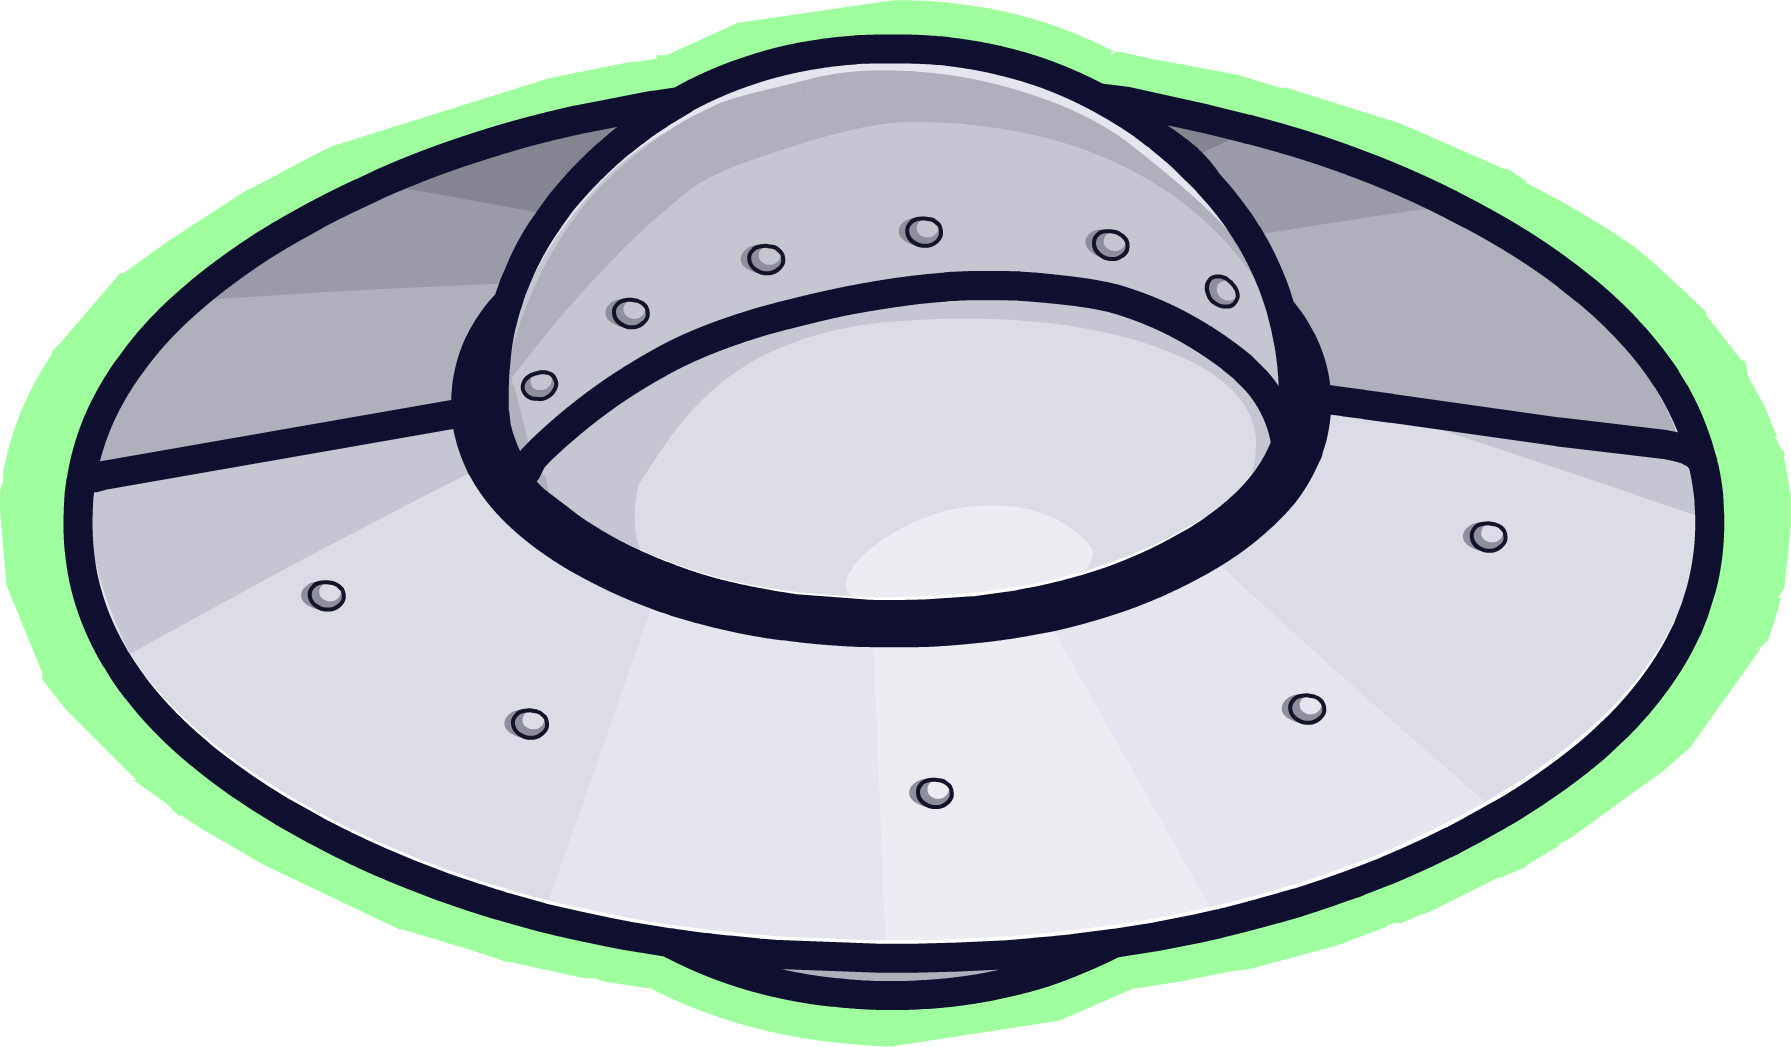 Image interface november png. Ufo clipart cool